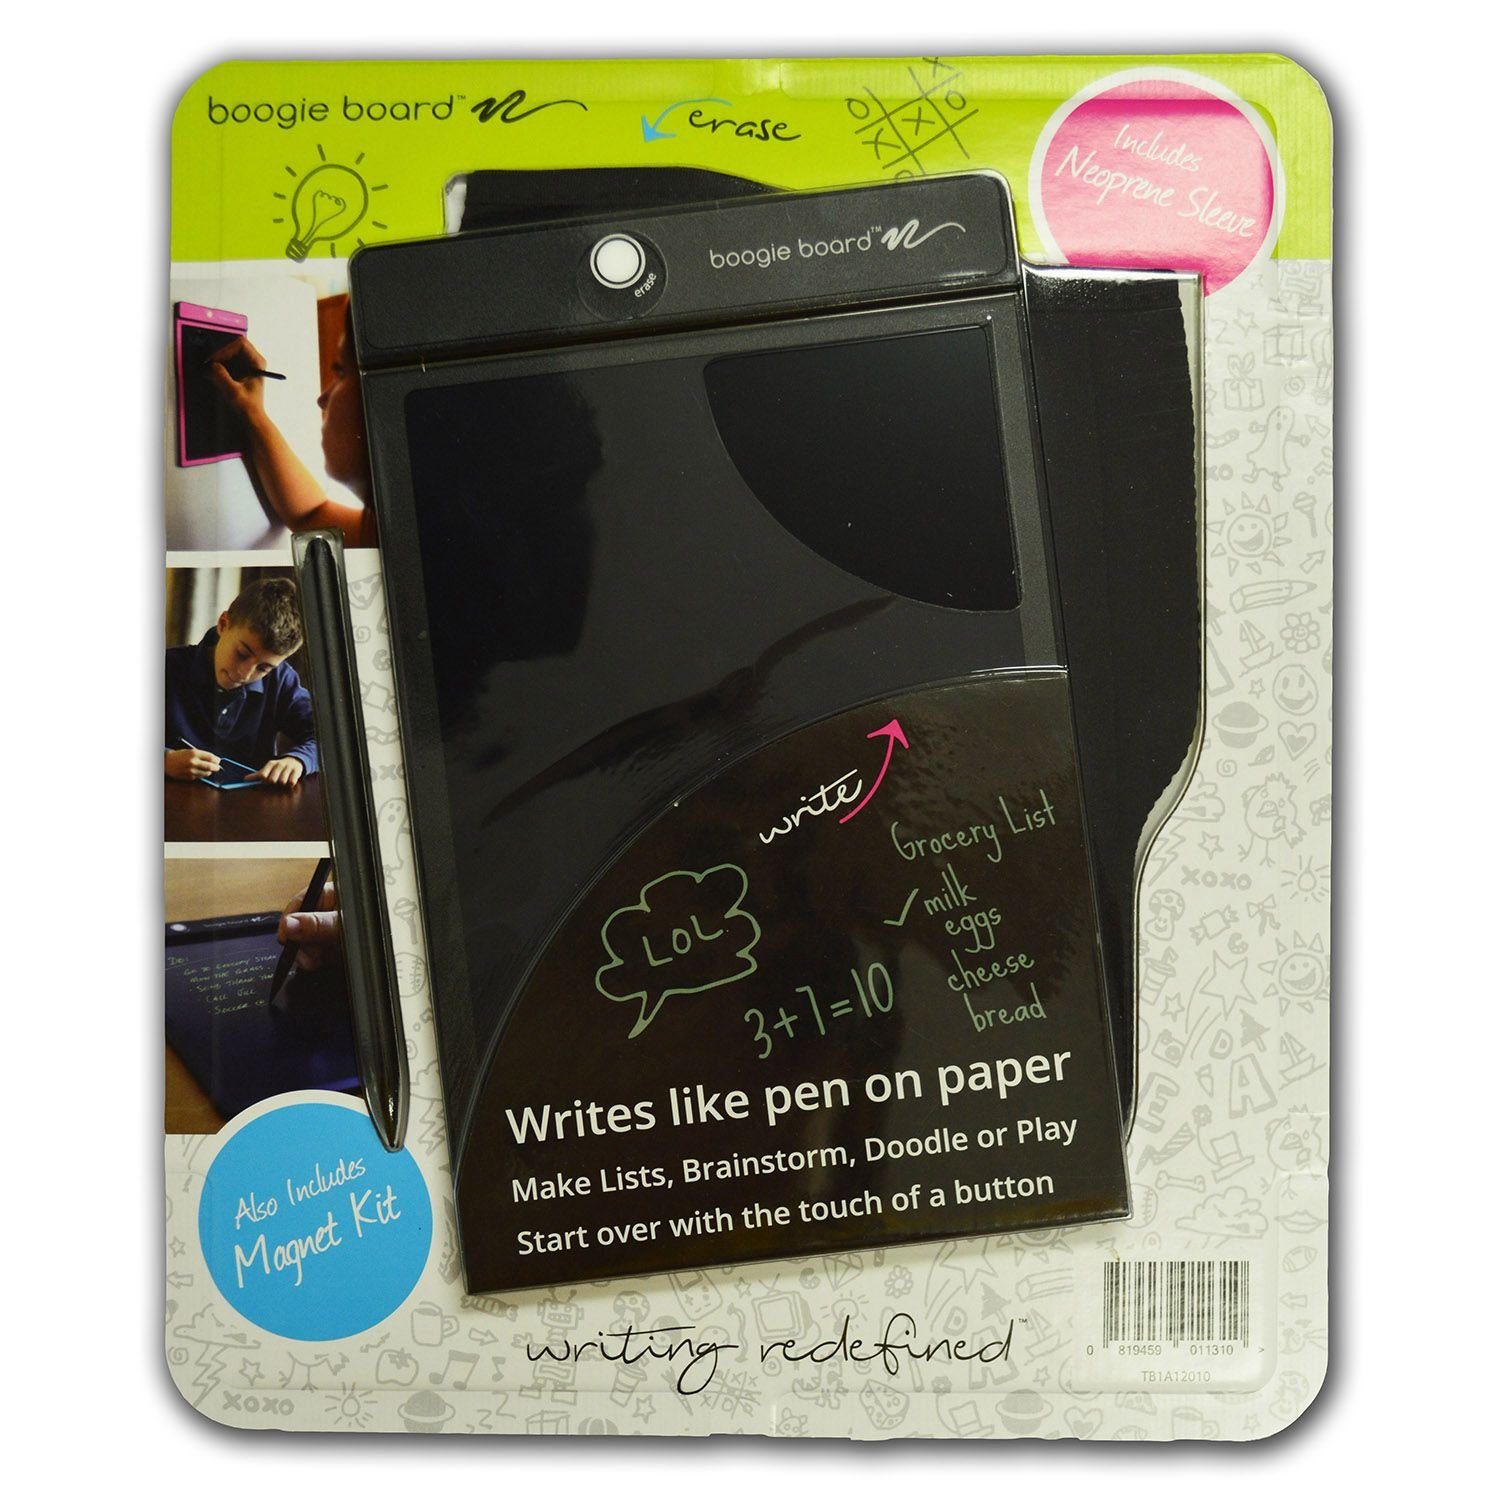 Intelligent Boogie Board 8.5 Ewriter Neoprene Sleeve Black Modern Techniques Graphics Tablets/boards & Pens Computers/tablets & Networking